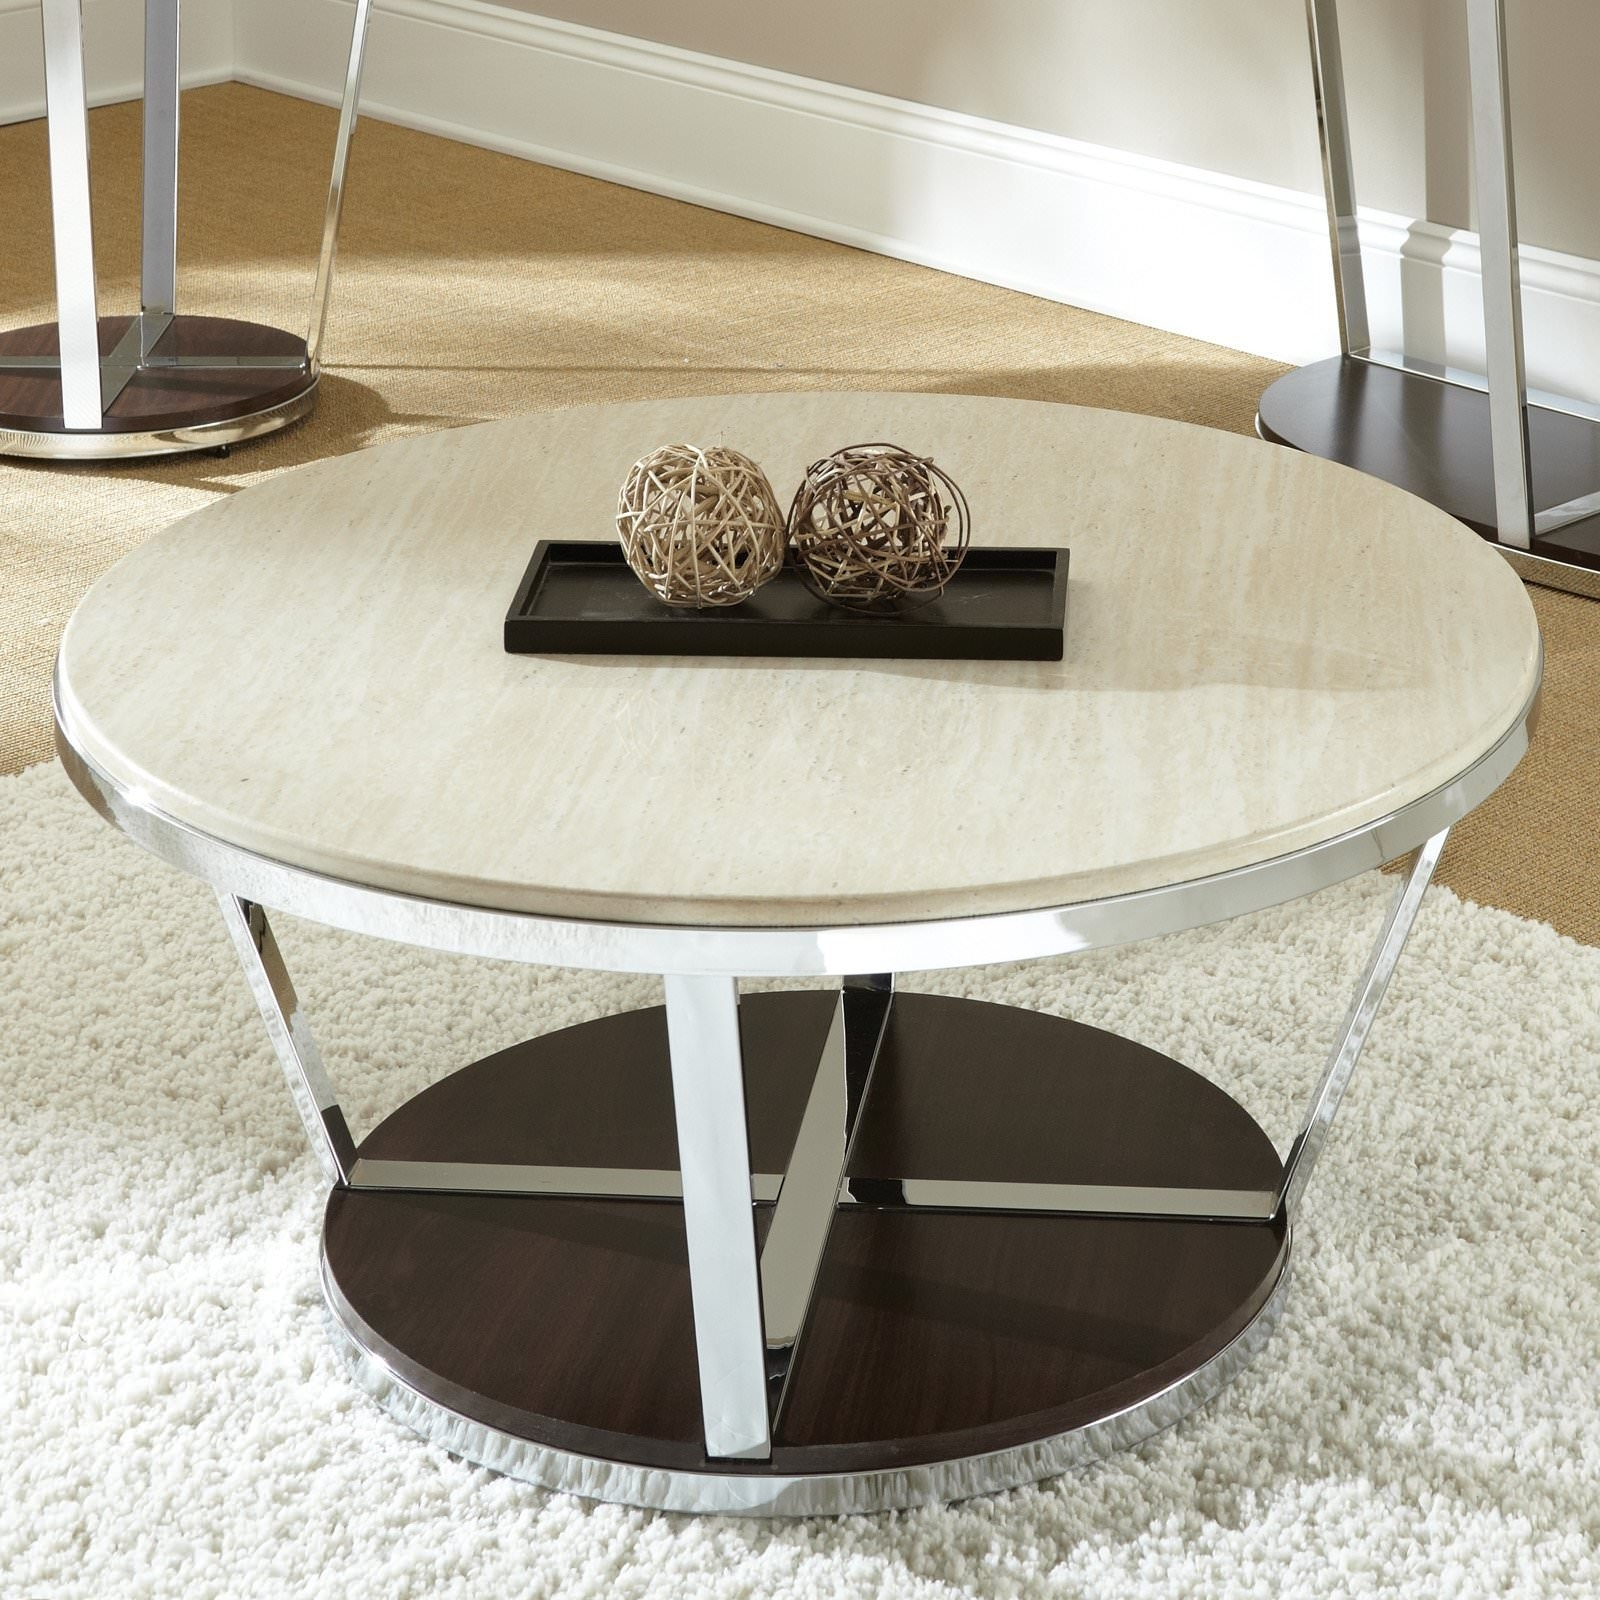 Widely Used Jackson Marble Side Tables For Round Faux Marble Coffee Table — Sushi Ichimura Decor : Stylish Faux (View 17 of 20)